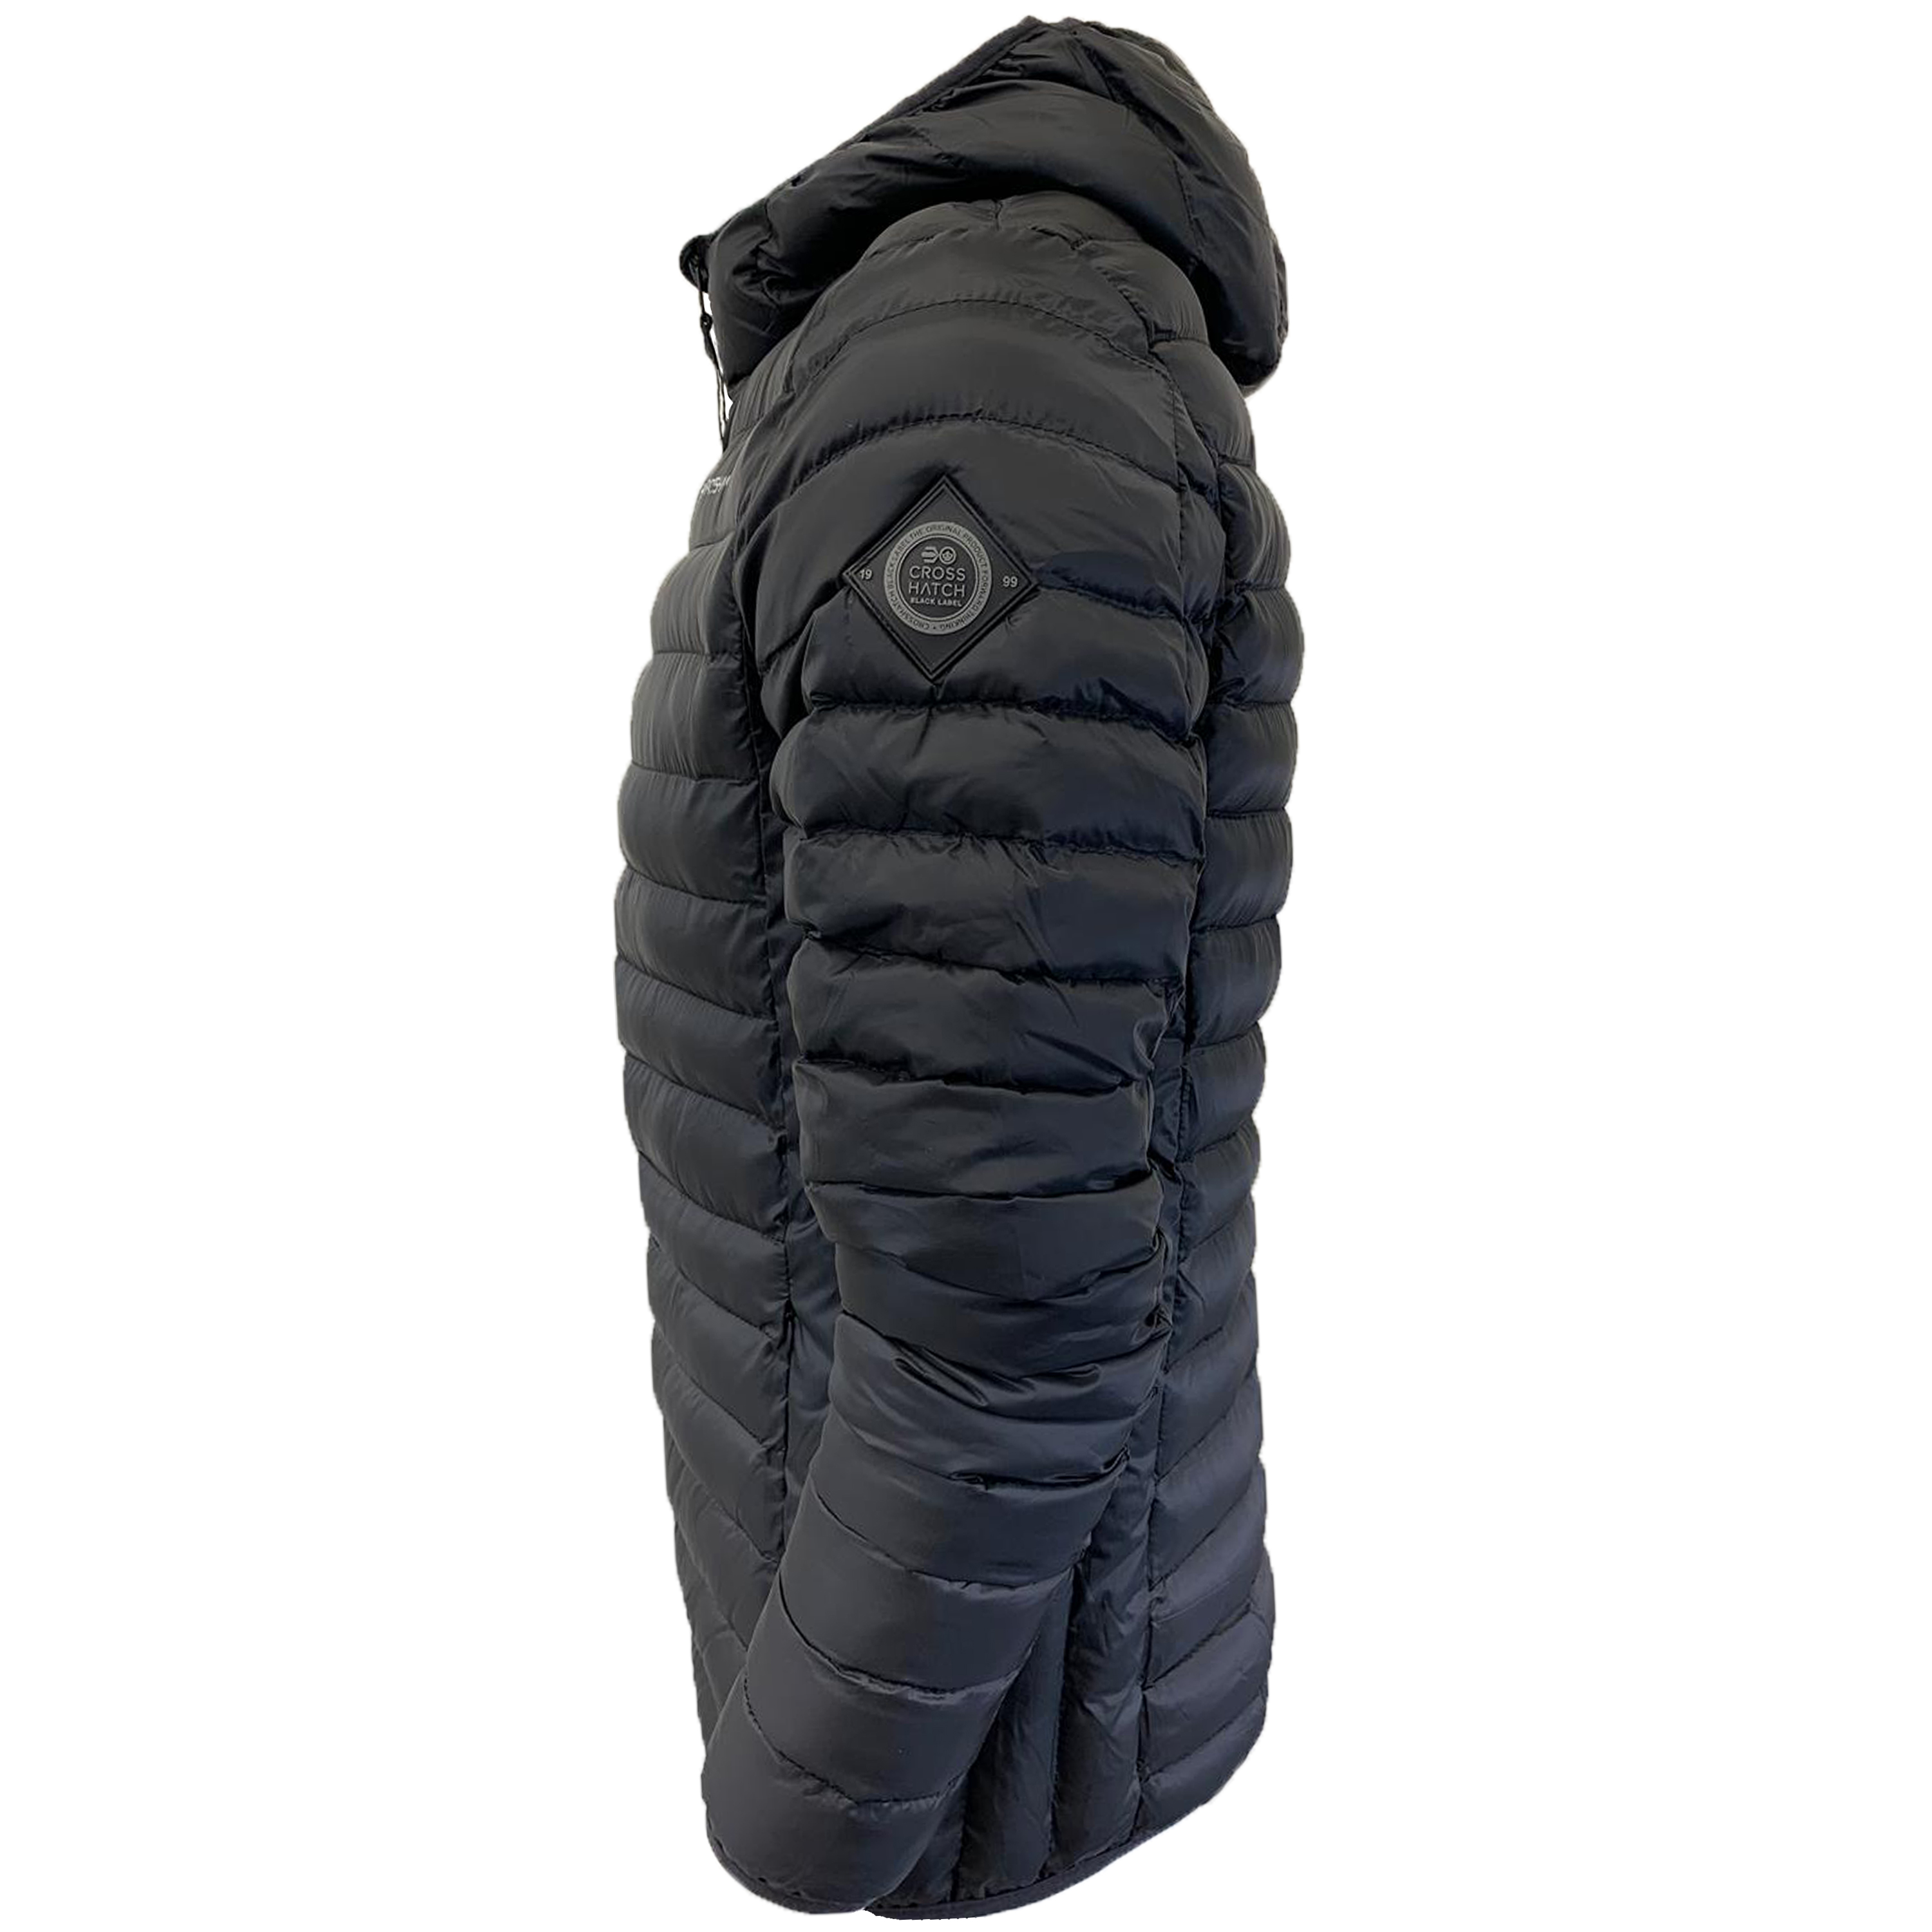 Mens-Jacket-Crosshatch-Hooded-Padded-Quilted-Two-Tone-FADEDOWN-Lined-Winter-New thumbnail 4